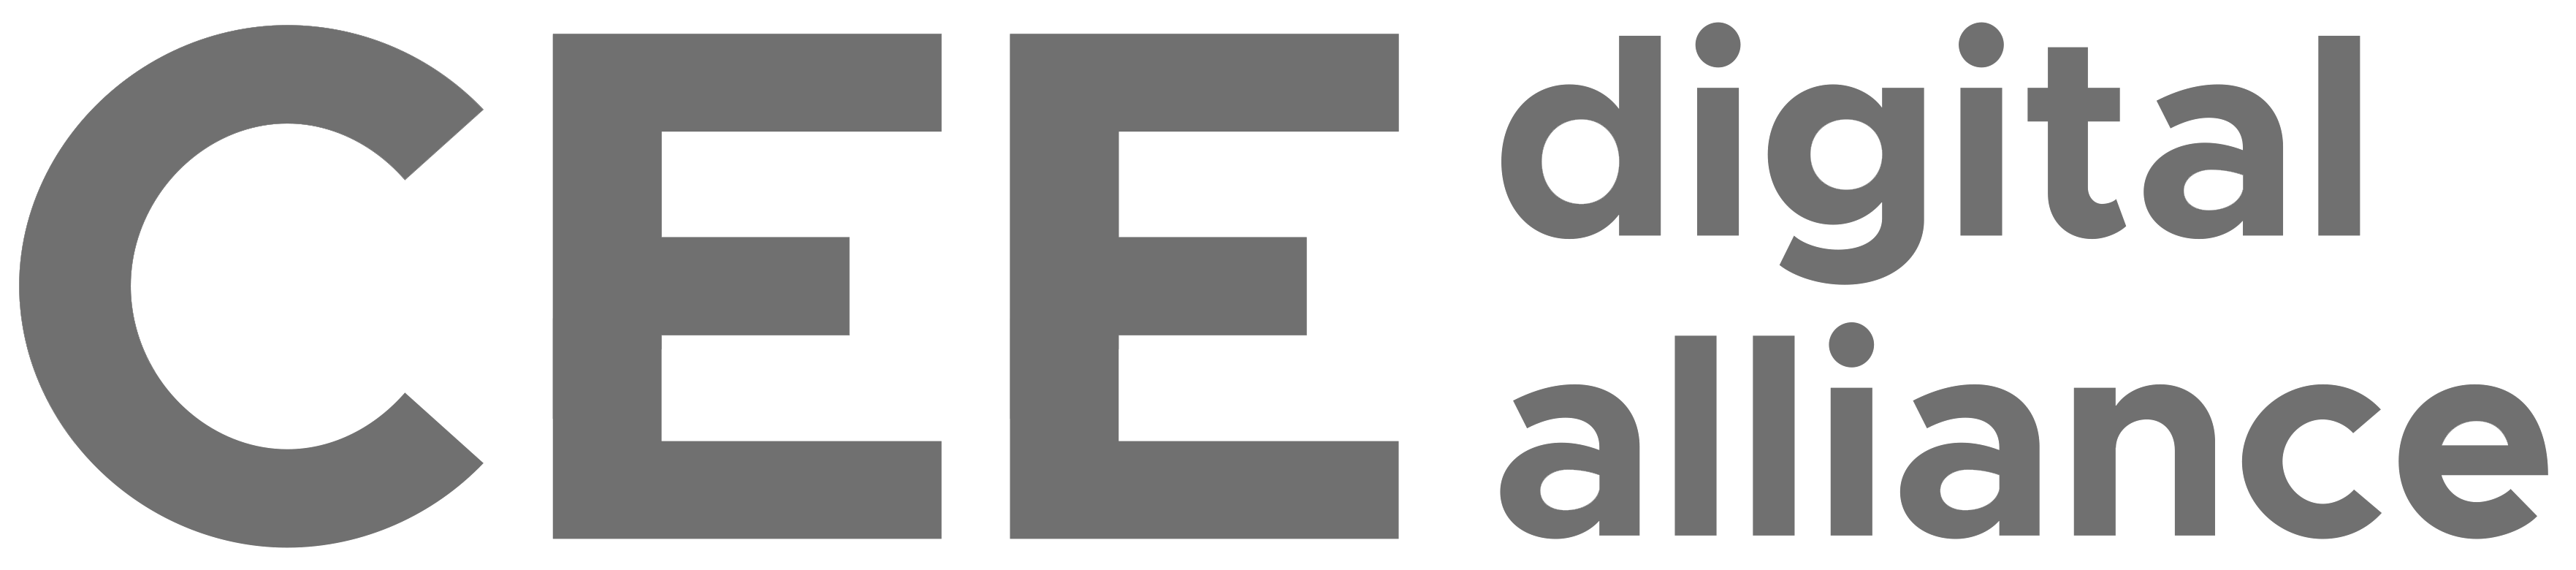 Logo CEE Digital Alliance grey